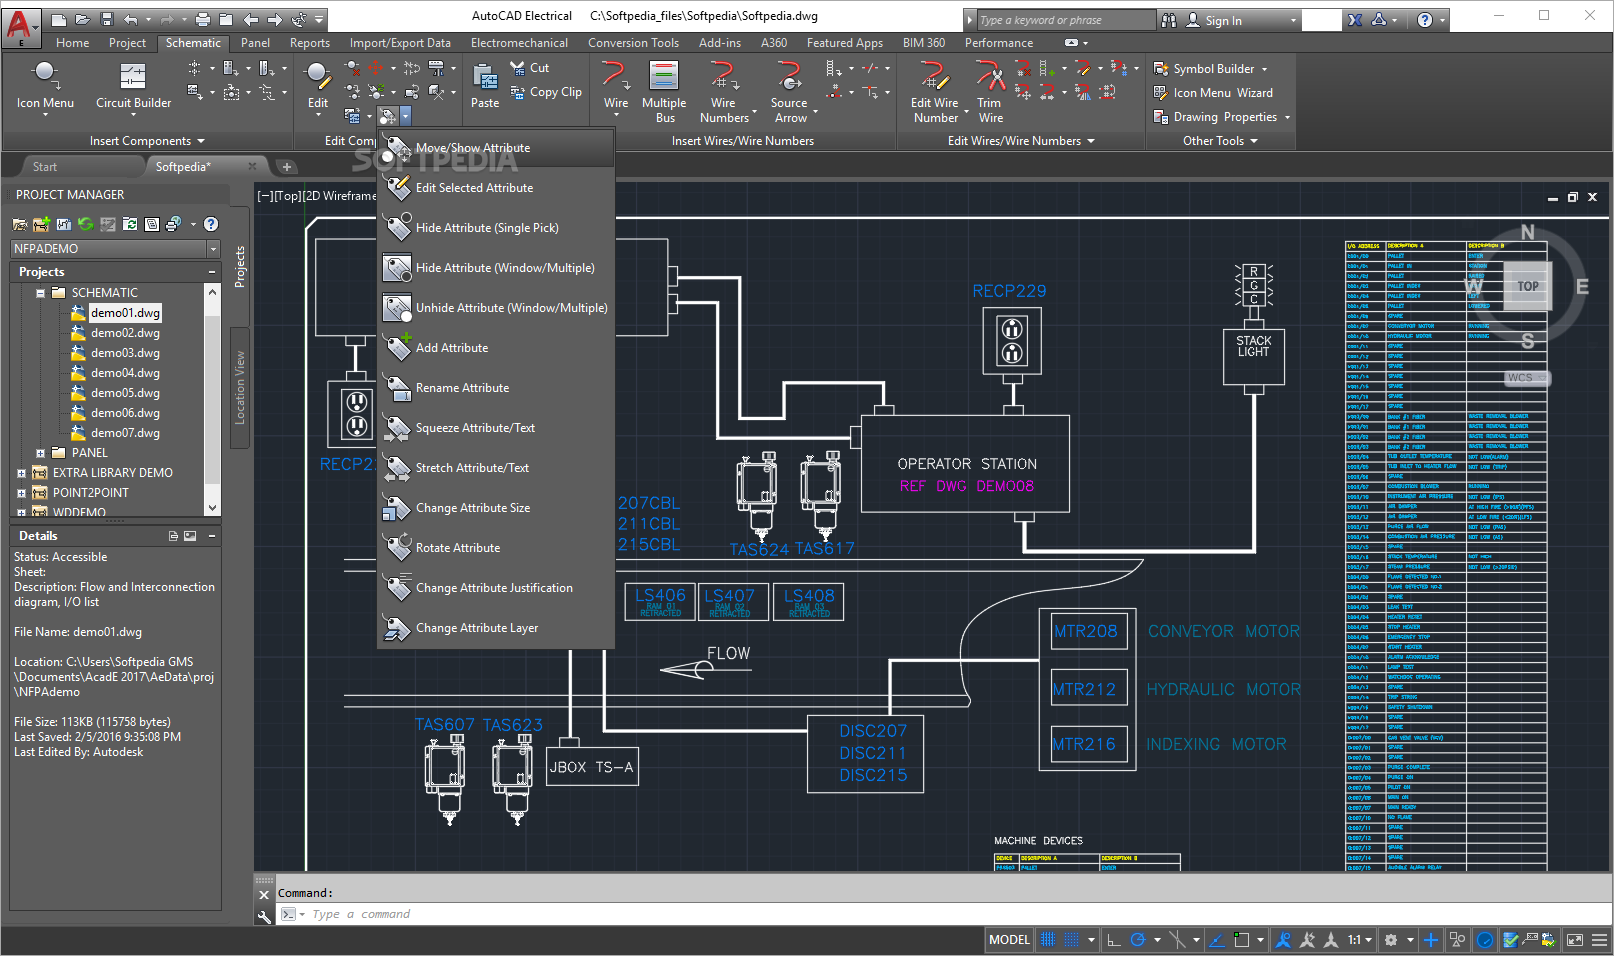 Download Autocad Electrical 2019 201911 Hotfix Circuit Design Suite Screenshot 34 5